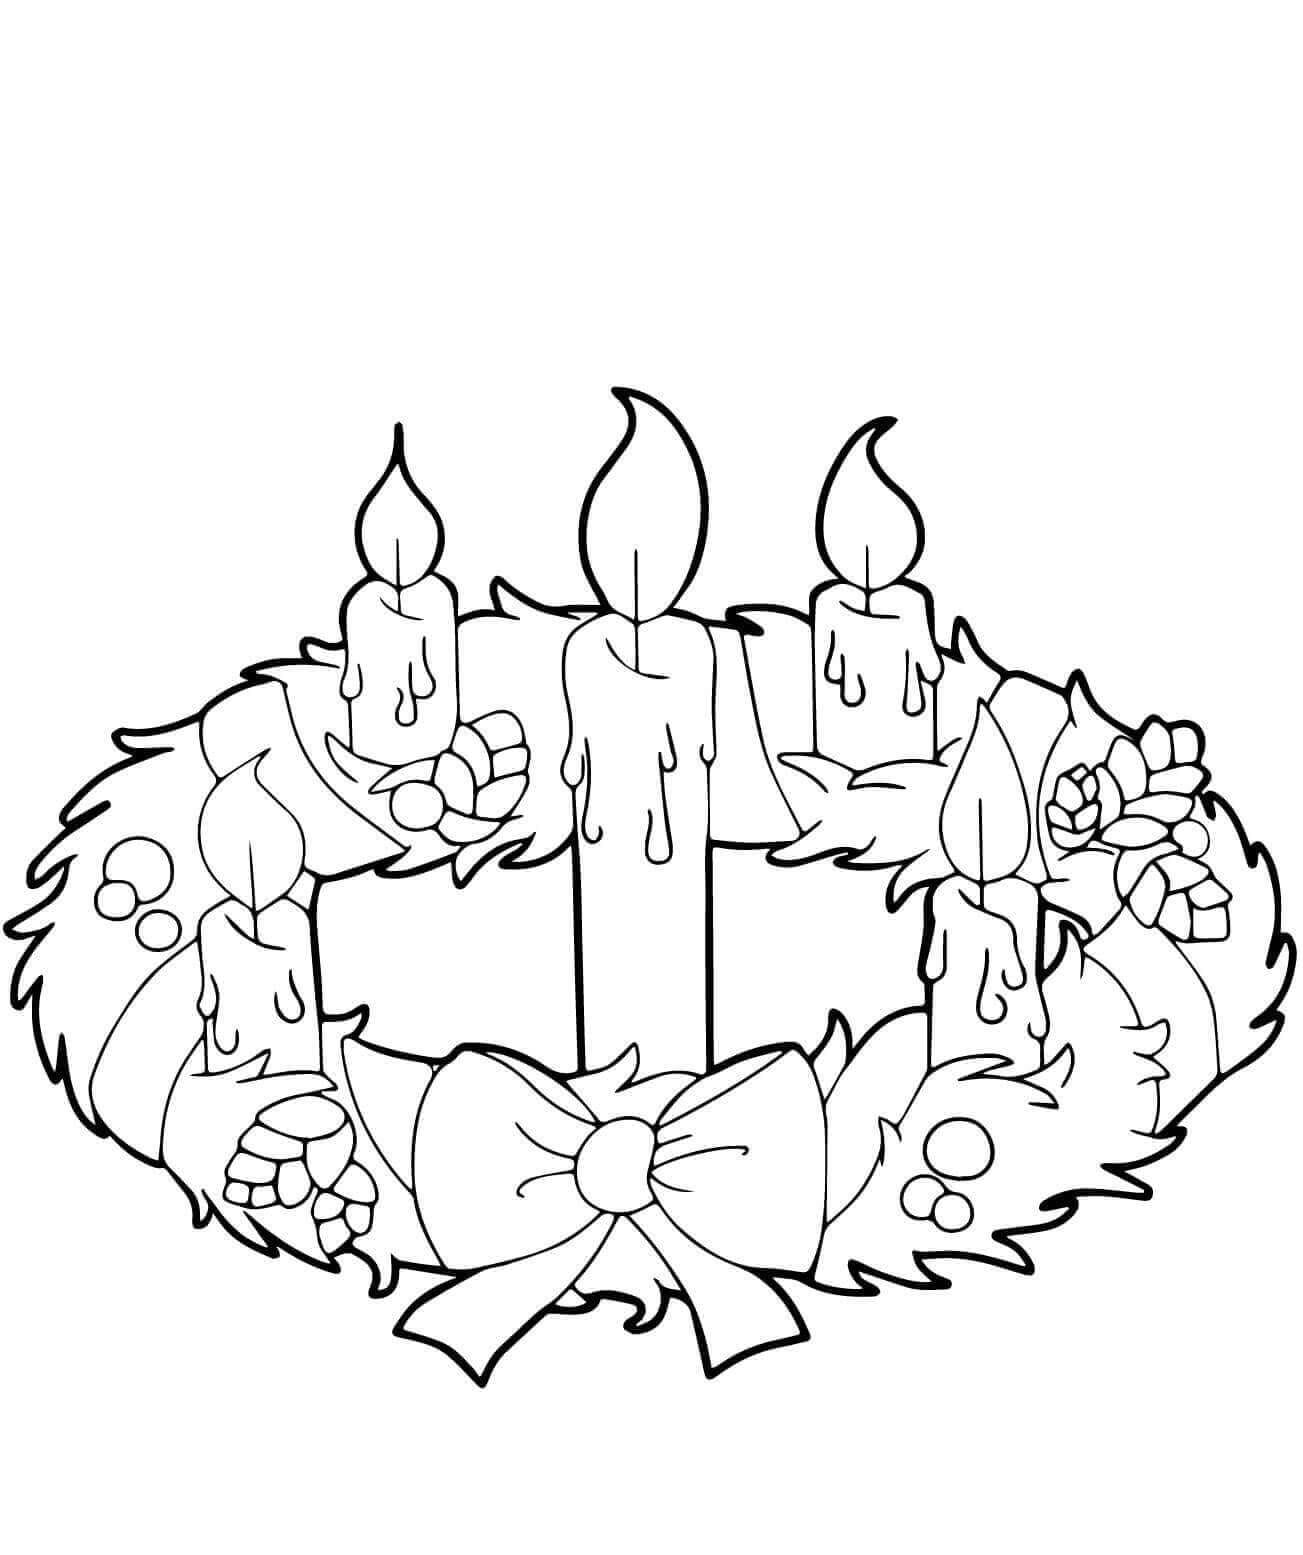 picture of advent wreath for coloring advent wreath coloring page free christmas recipes sketch wreath advent picture for coloring of